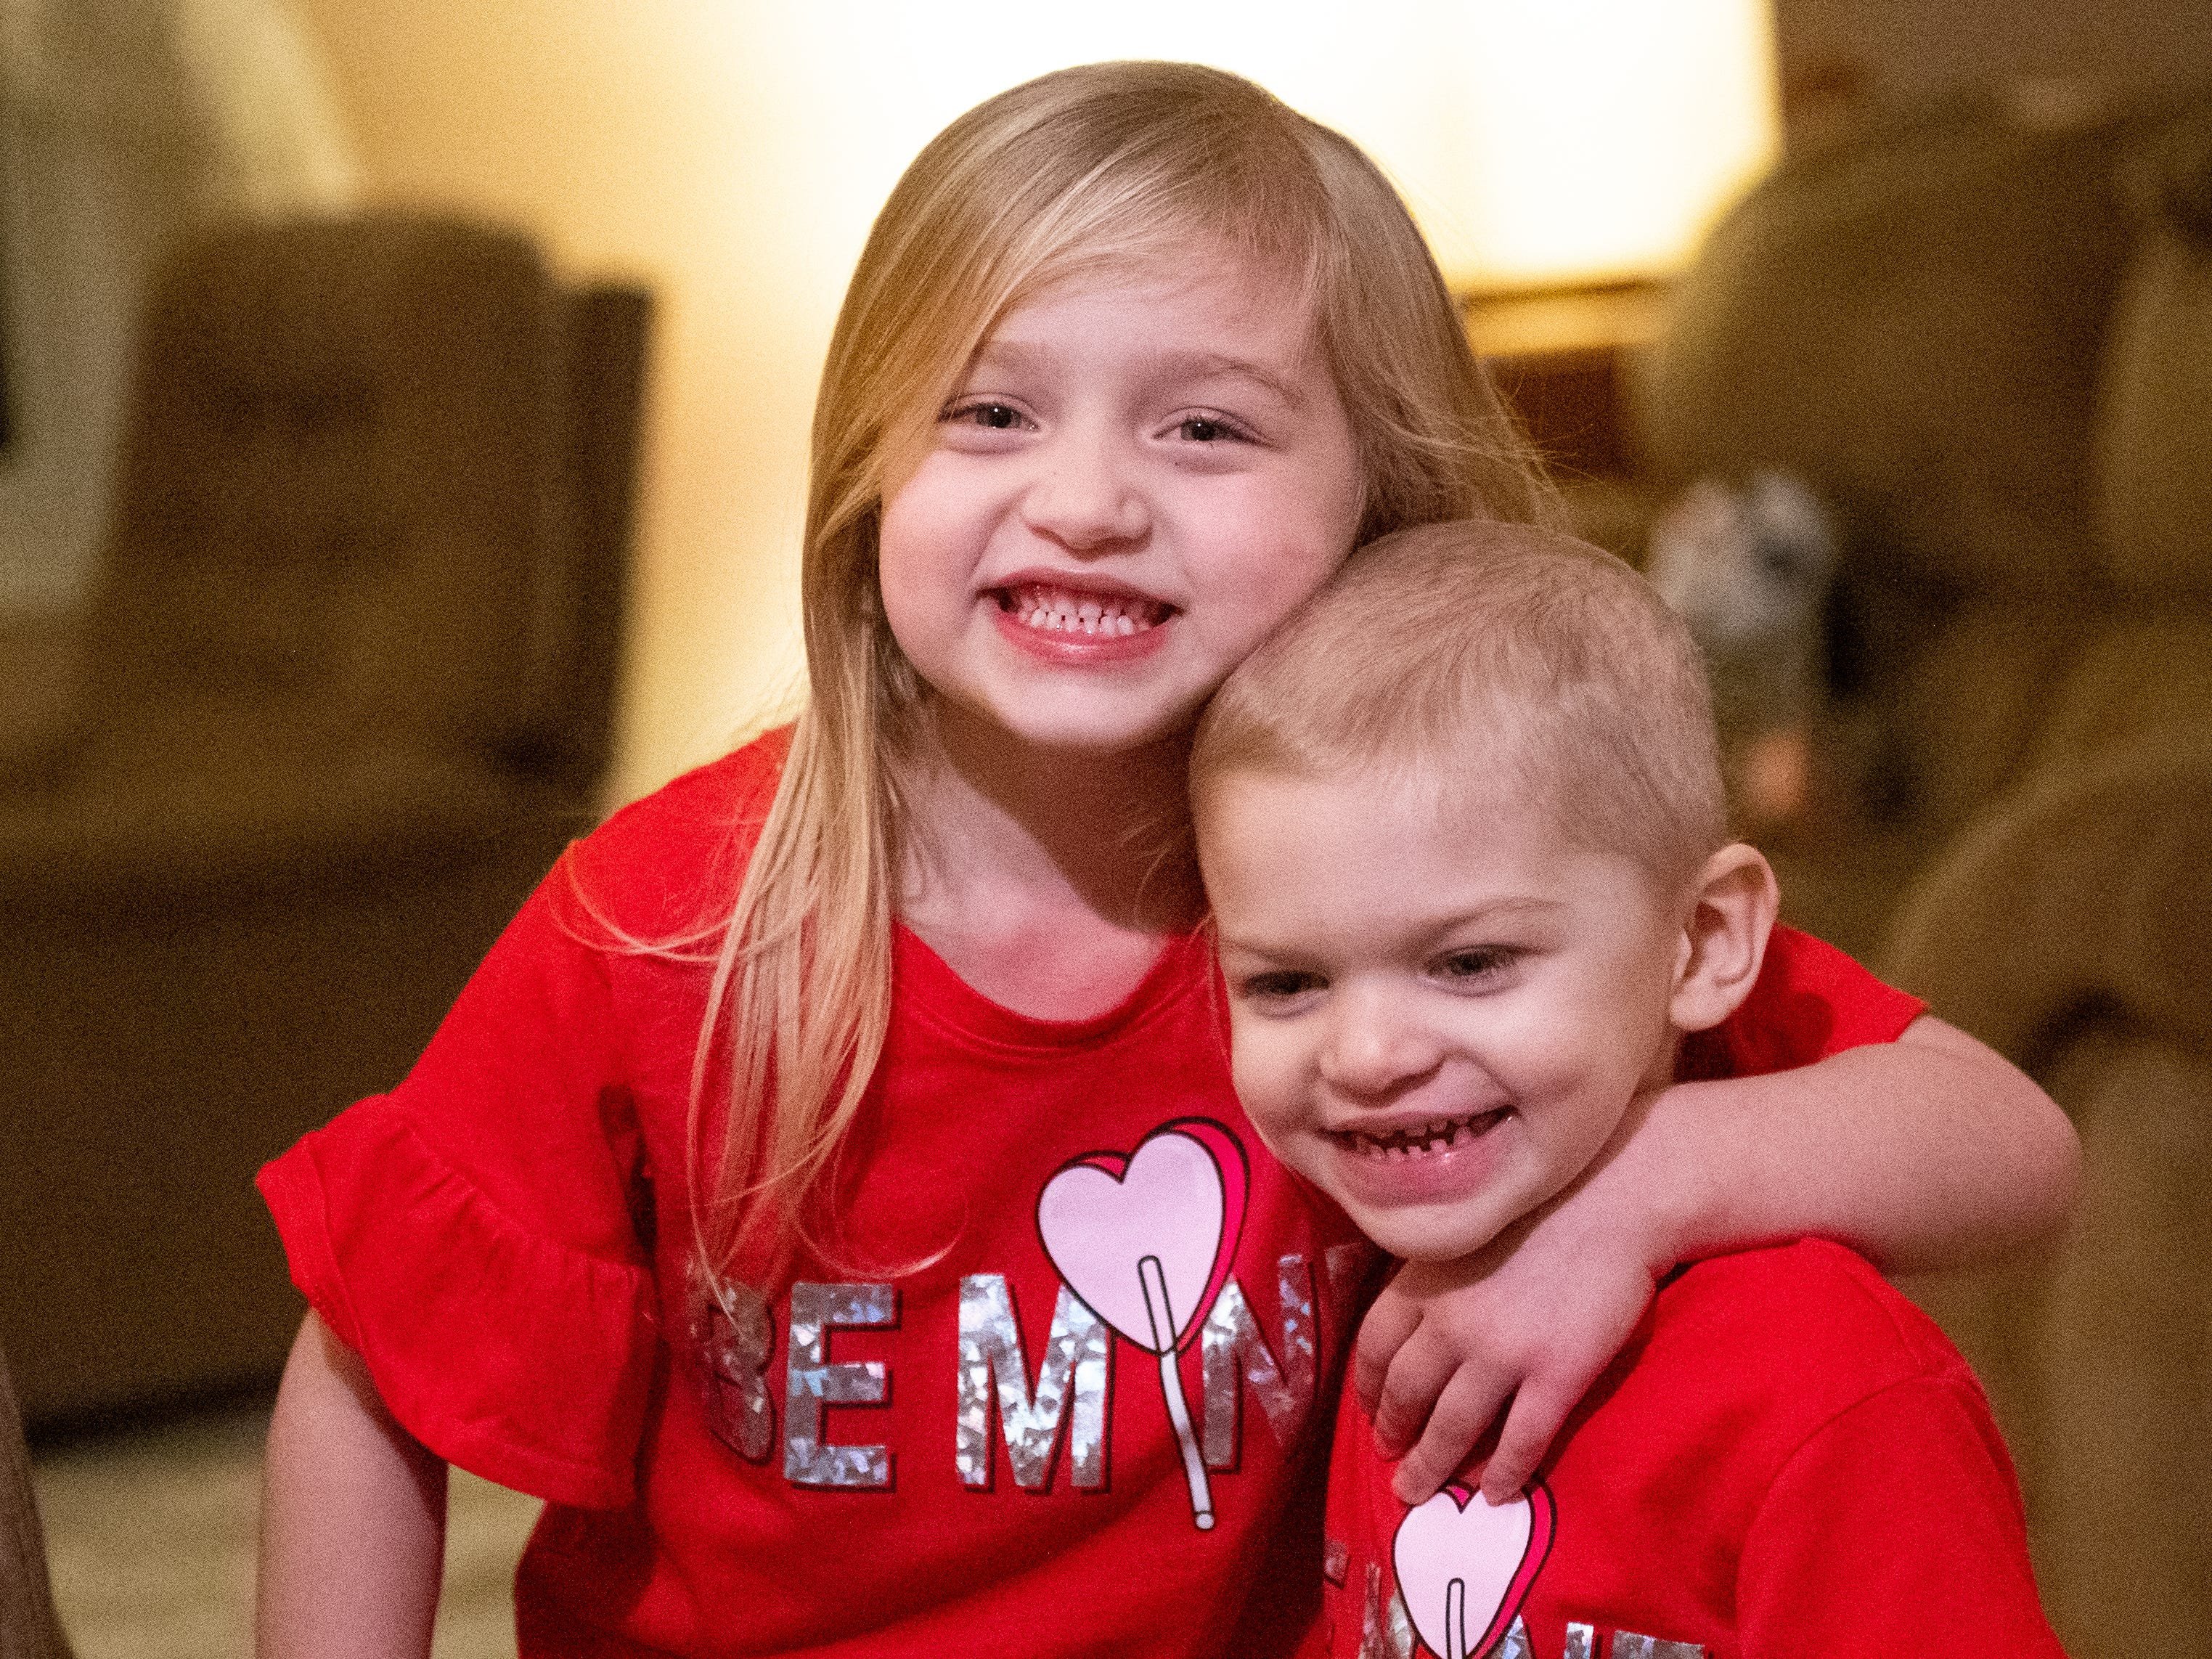 Harper Crimmel, 4, and her little sister Shiloh, 2, wore matching Valentine's Day outfits this week. Shiloh was diagnosed with cancer last year, but she and her family are receiving great support from members of the Penn State community and will participate in this weekend's THON.